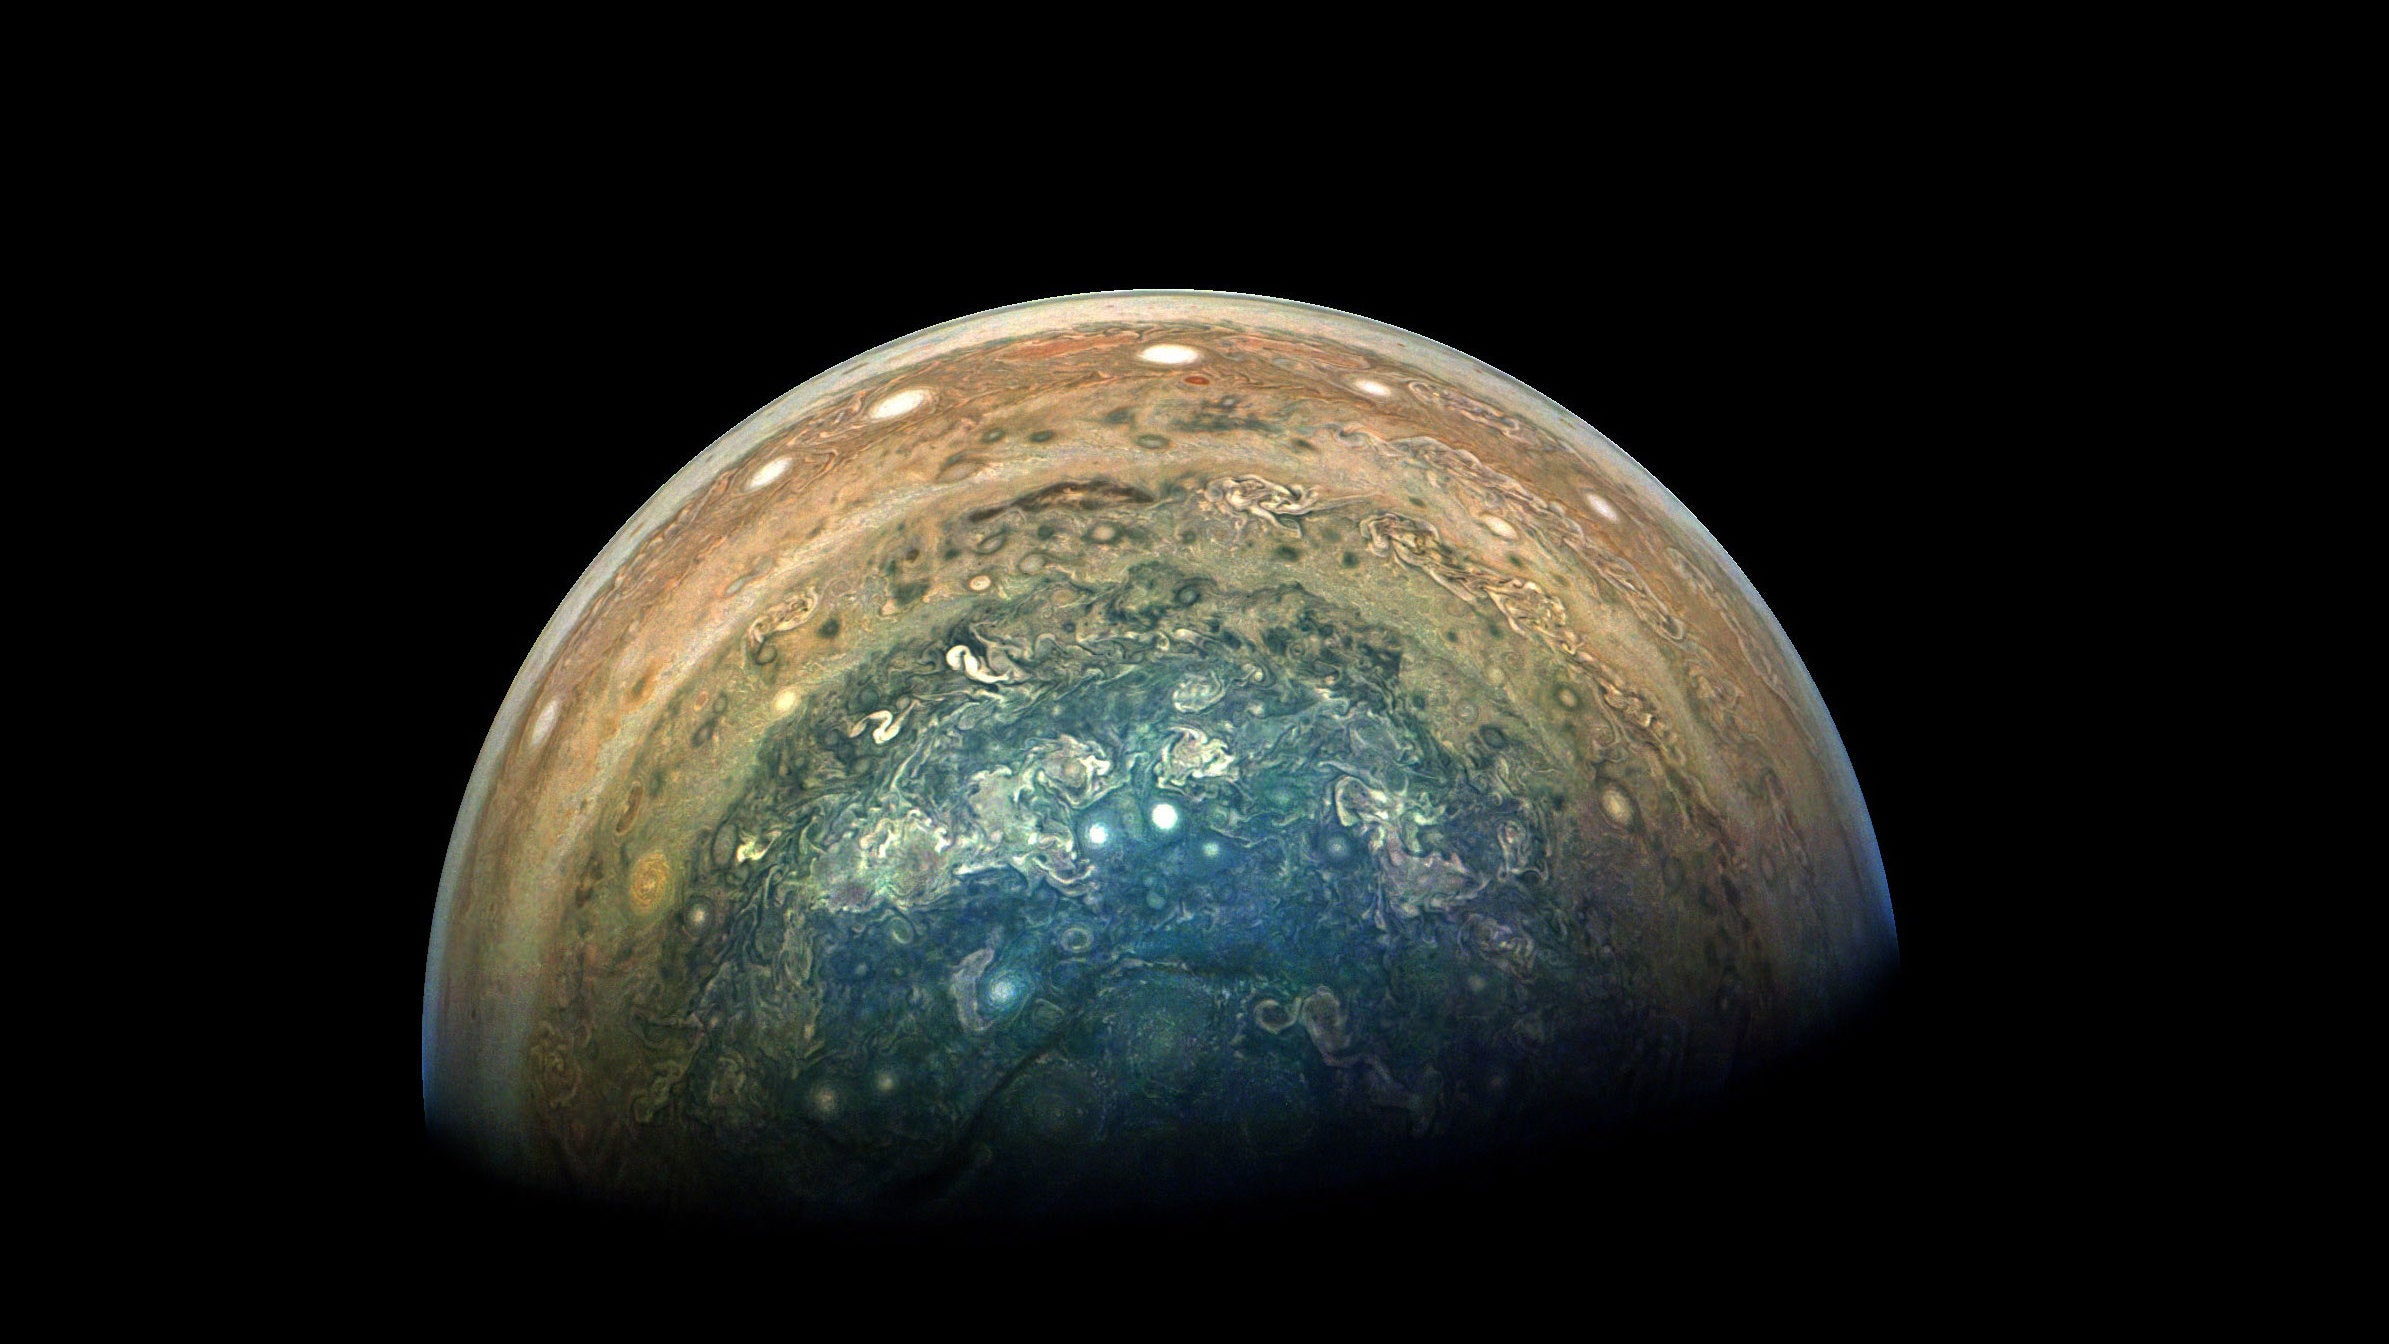 This Picture Of Jupiter's Swirly Blue Pole Is Magnificent